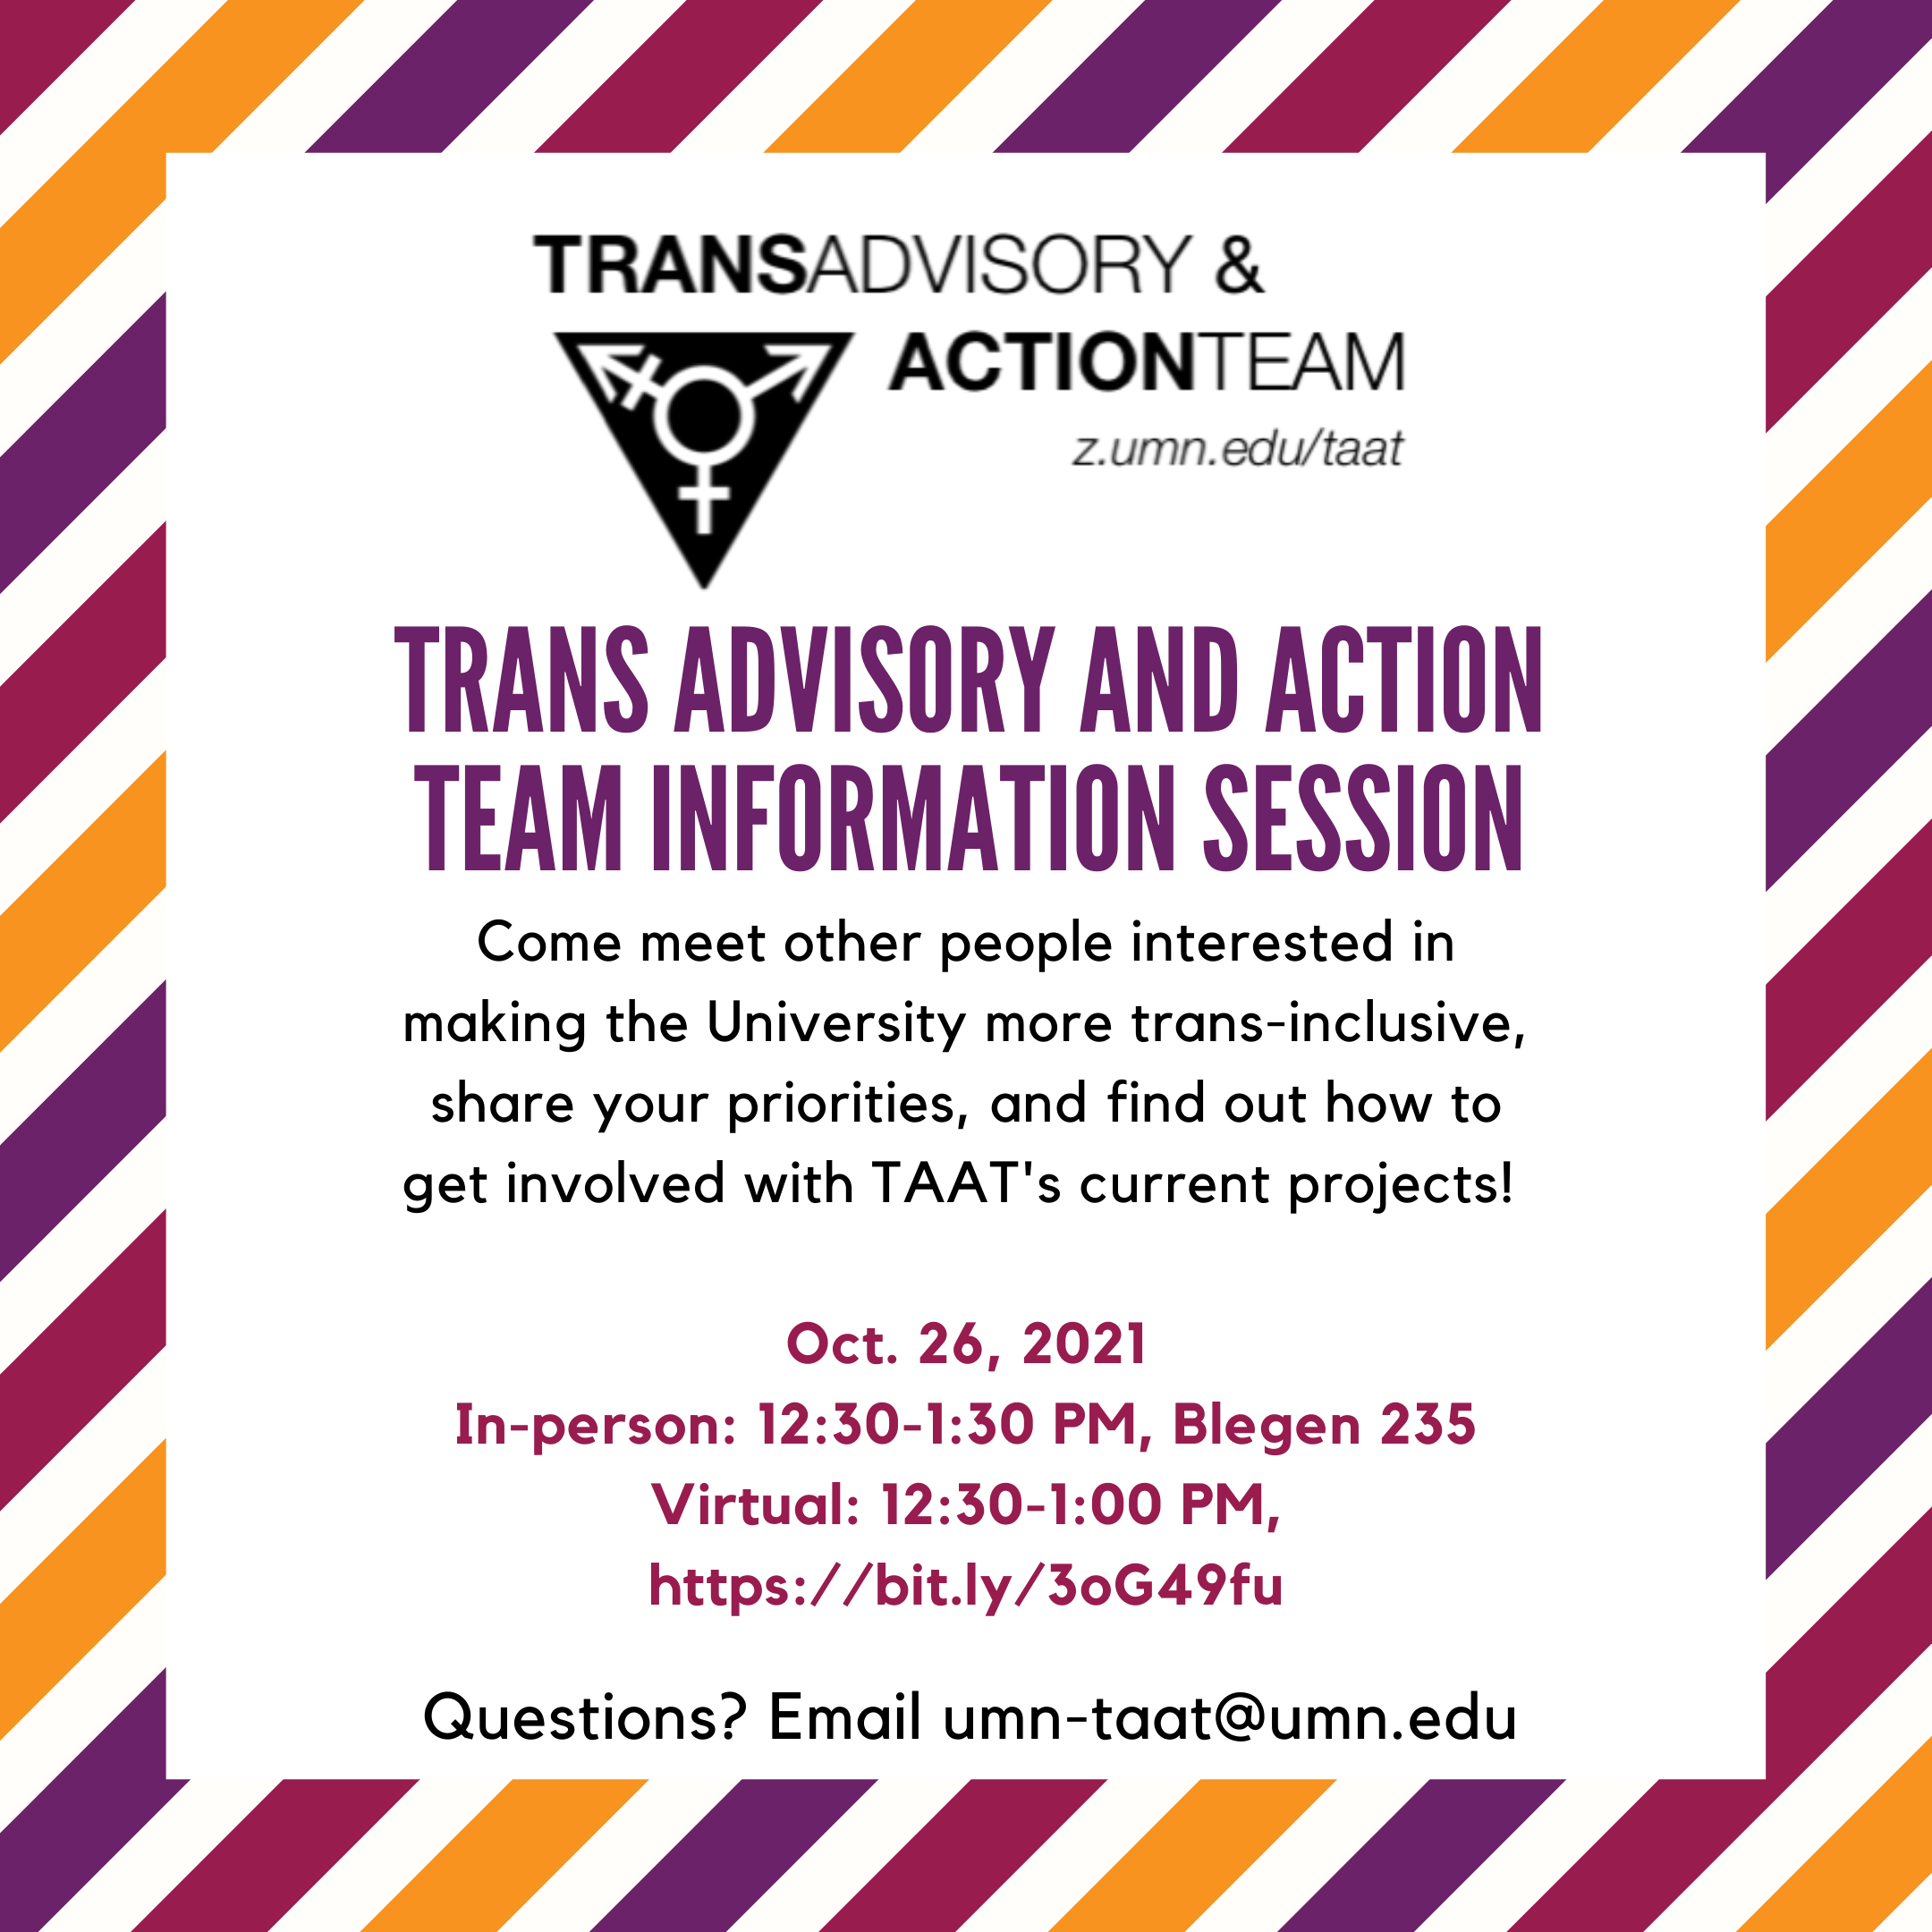 A photo with the TAAT logo on a white background with orange, maroon, and purple diagonal stripes. Text that reads Trans Advisory & Action Team